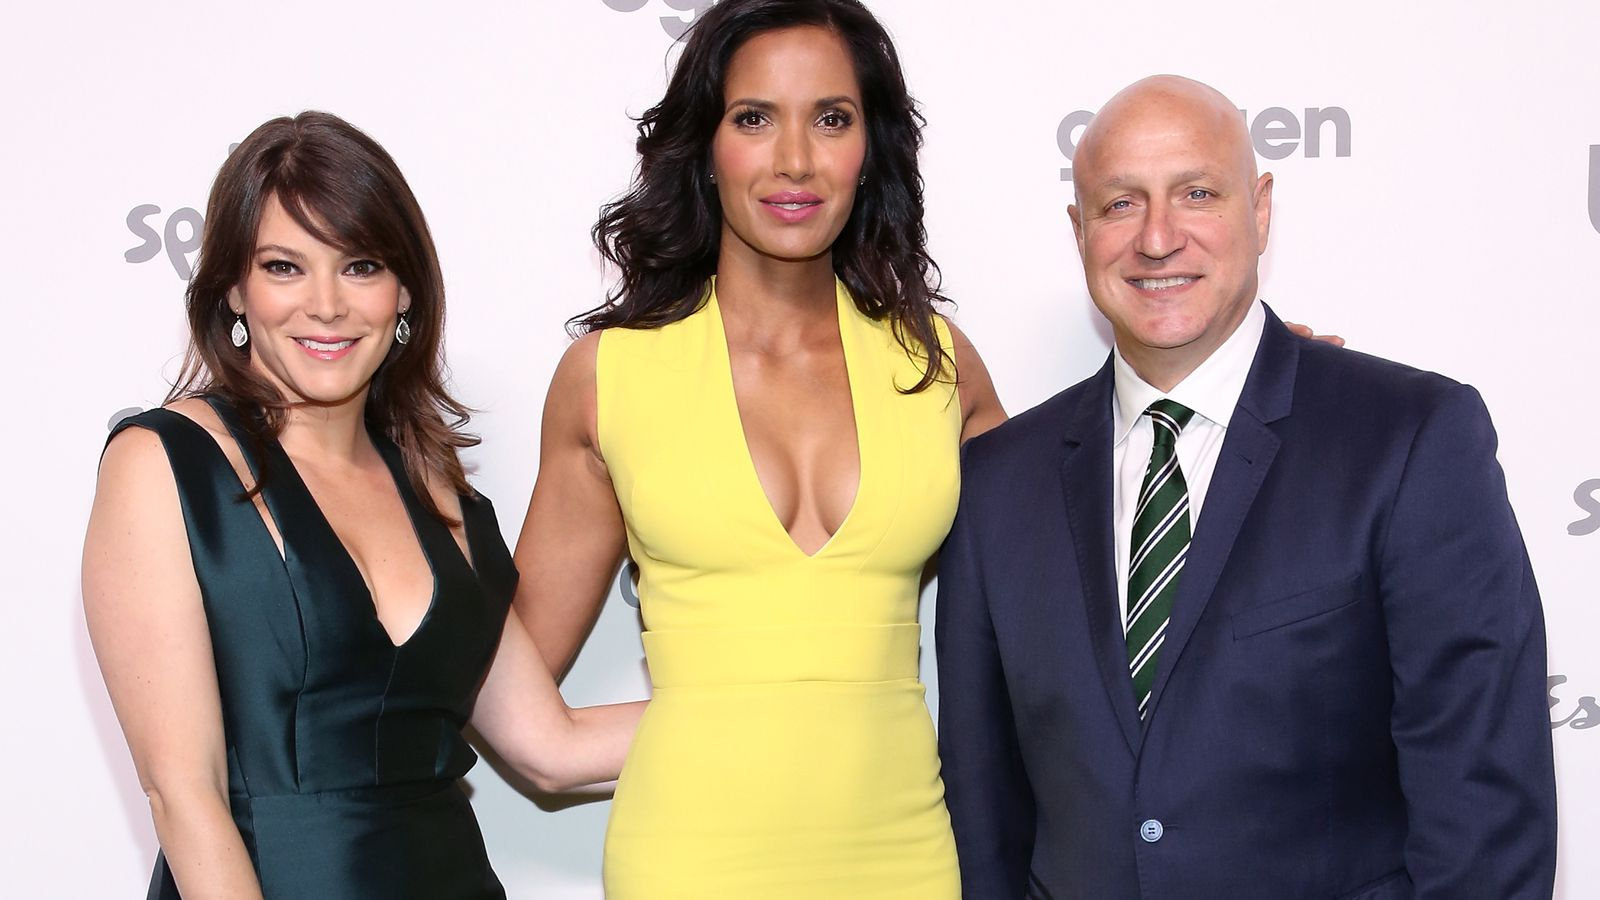 Top Chef: Teamsters Accused Of Harassing 'Top Chef' Crew Found Not